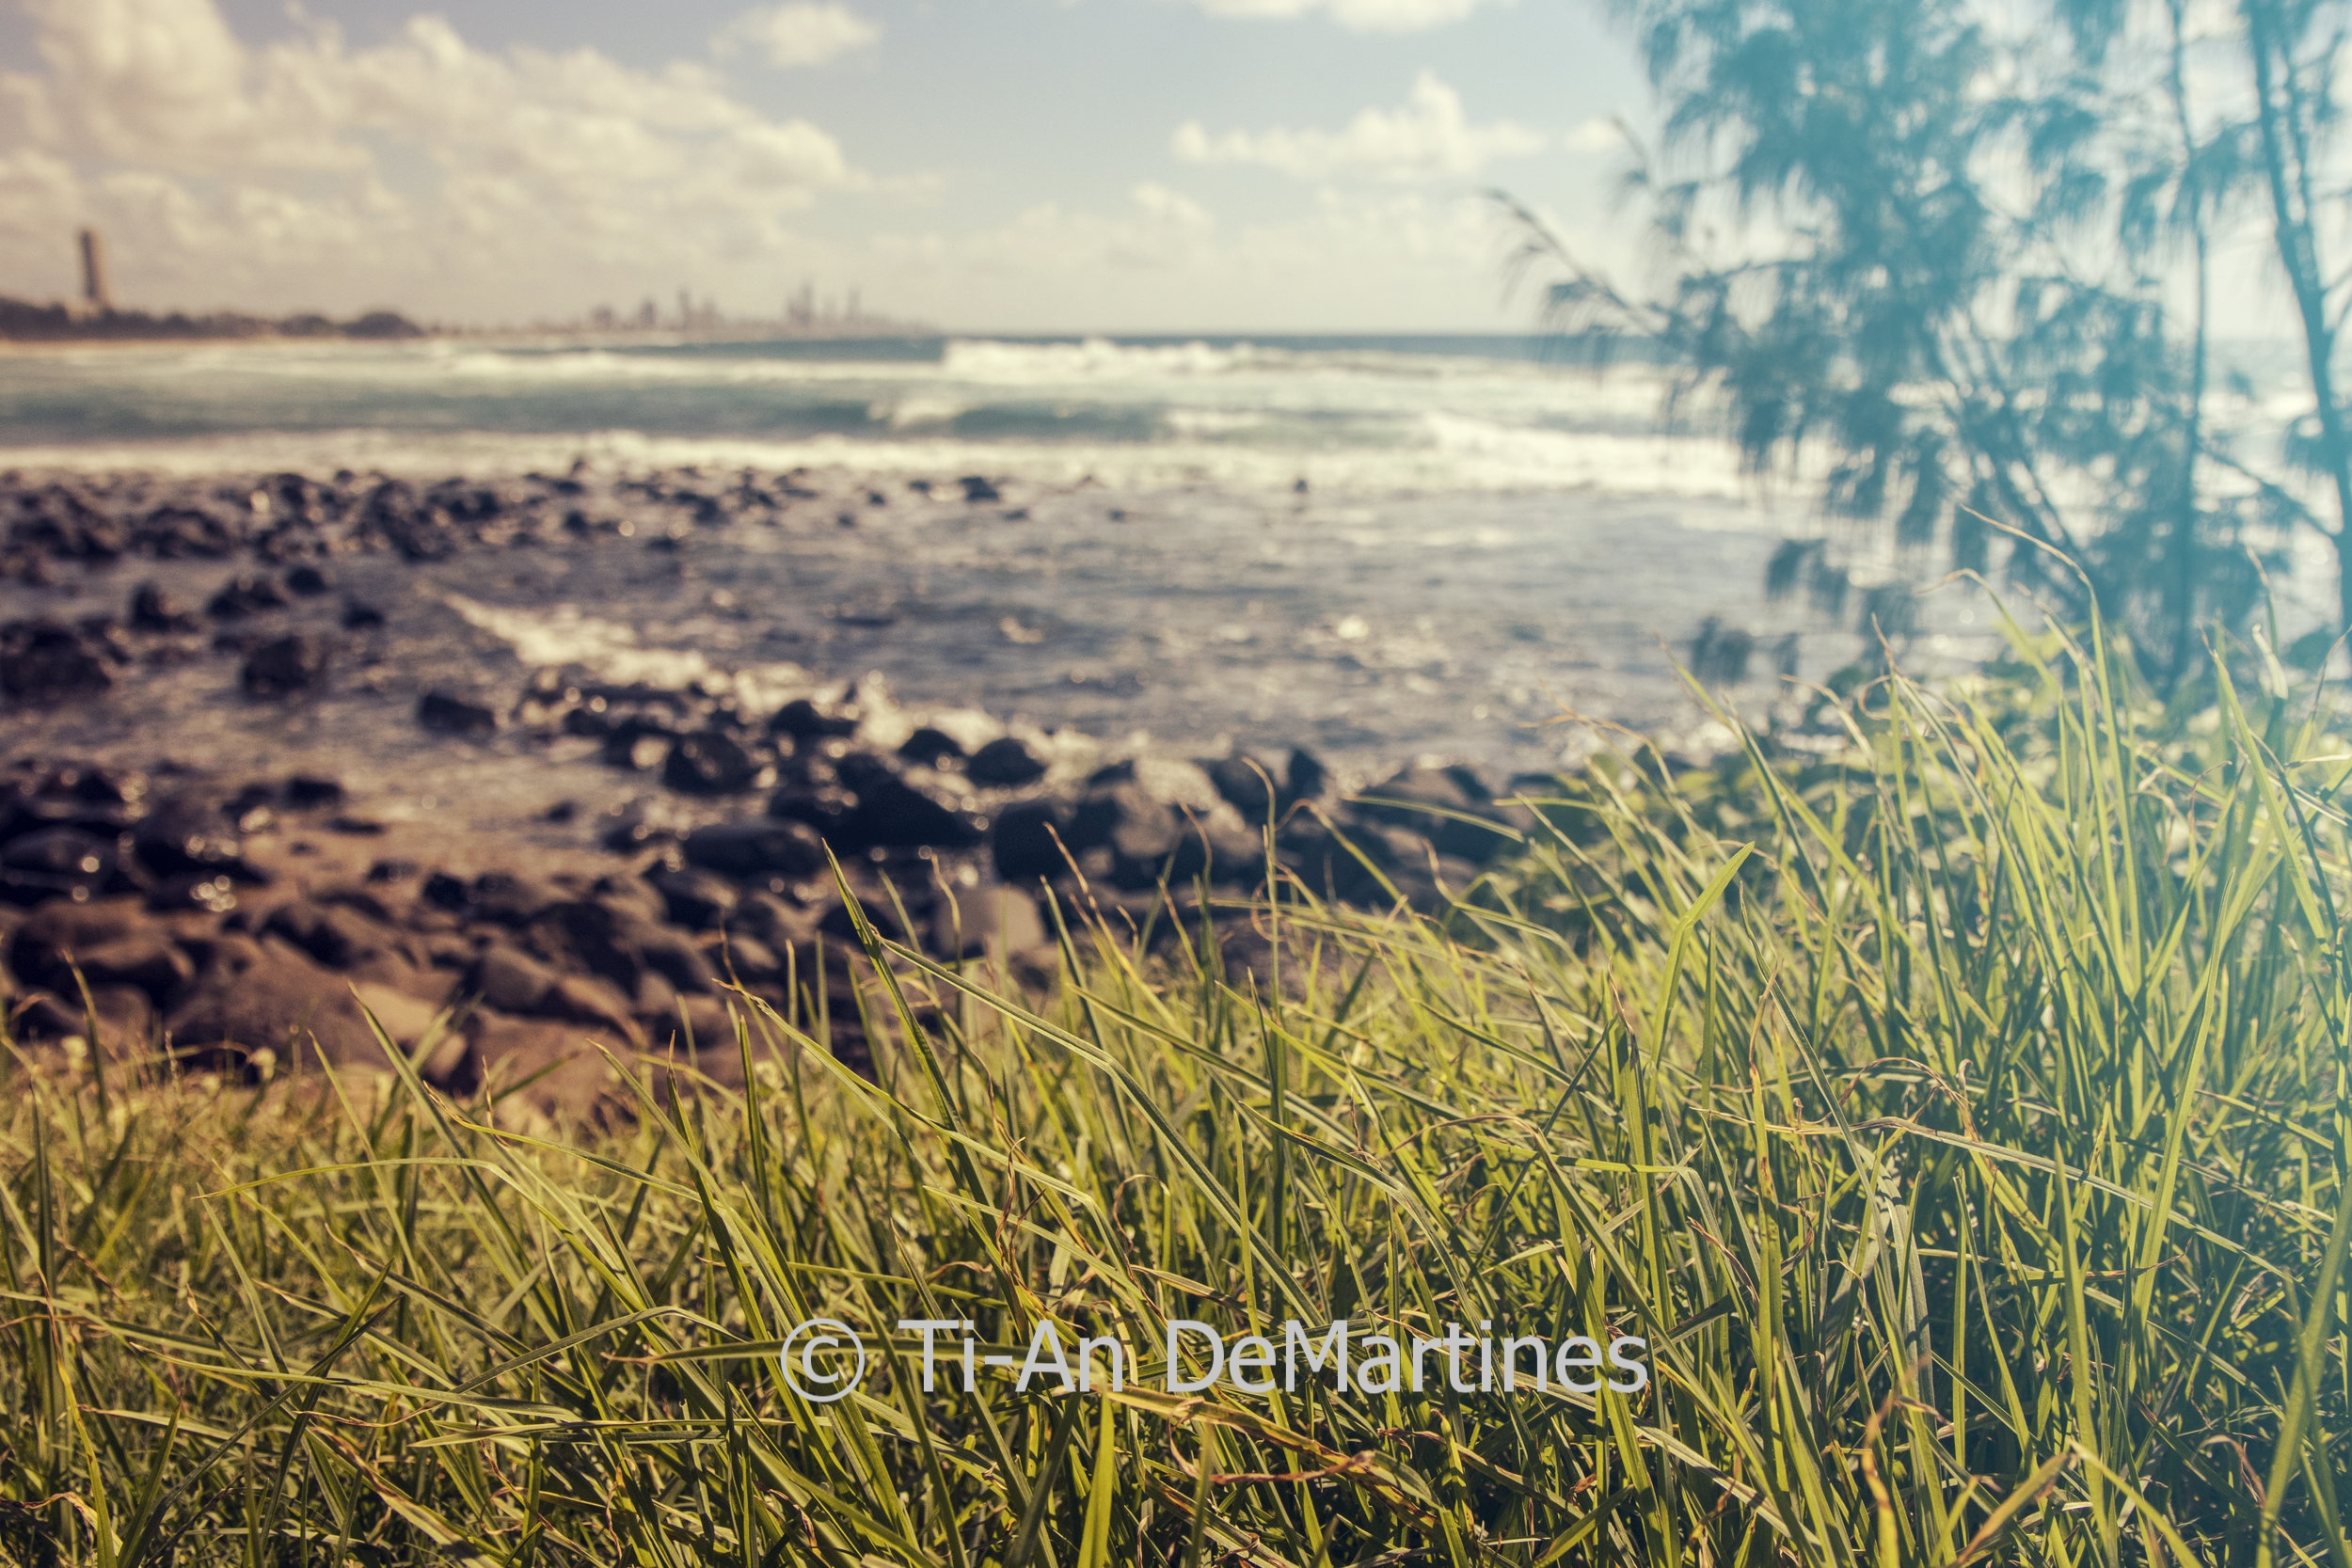 Laying in the Grass at Burleigh Hill   Digital photograph  2018